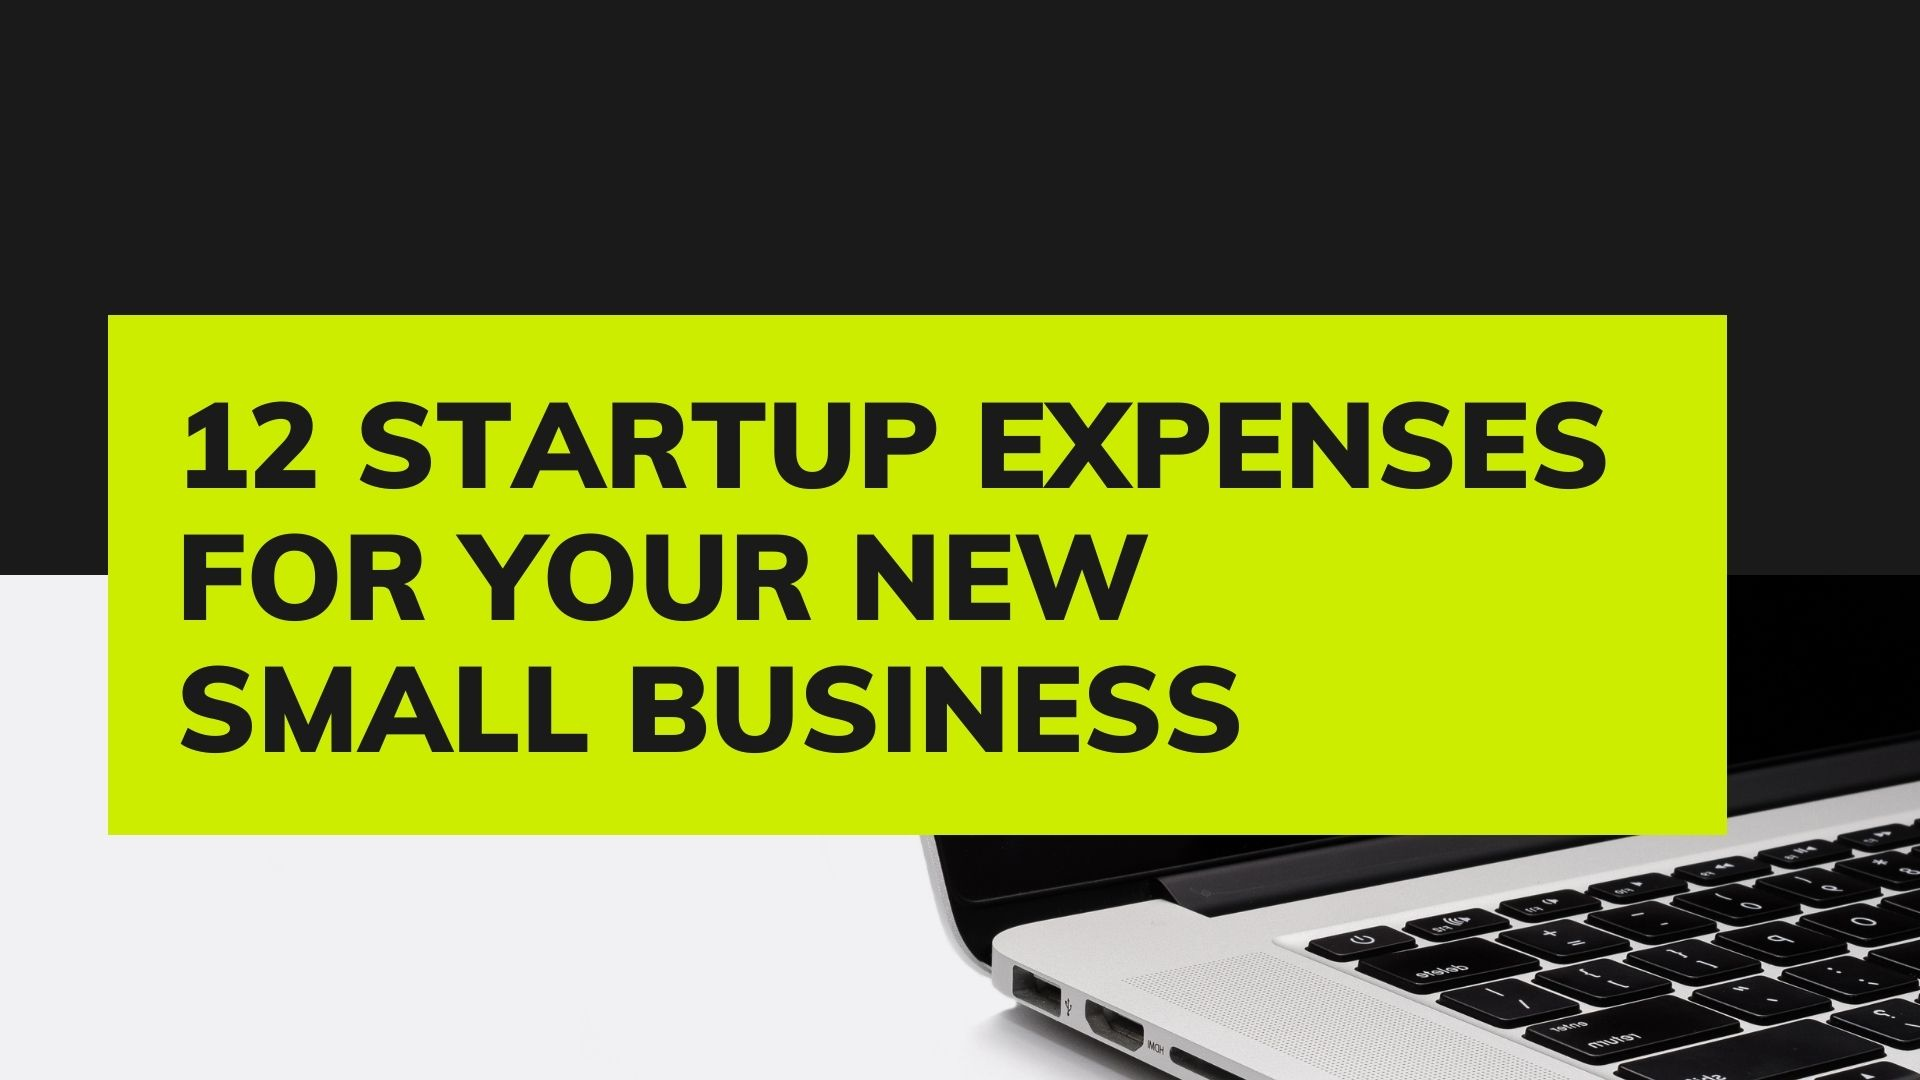 Startup Expenses For your New Small Business